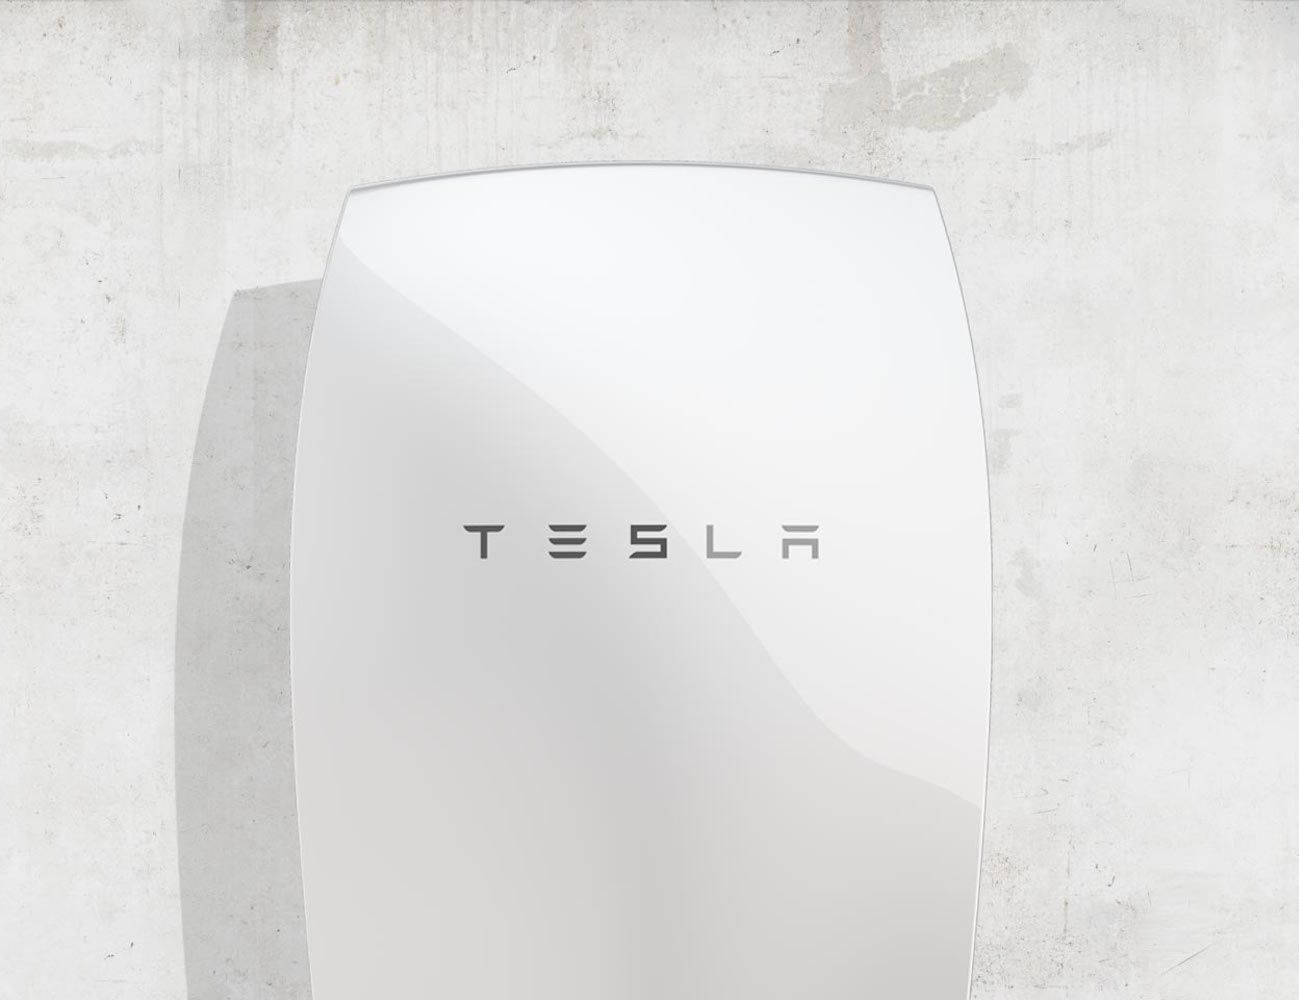 Powerwall Is A Home Battery That Charges Using Electricity Generated Maxim Integrated Max9835x Audio Amplifiers Mouser From Solar Panels Or When Utility Rates Are Low And Powers Your In The Evening